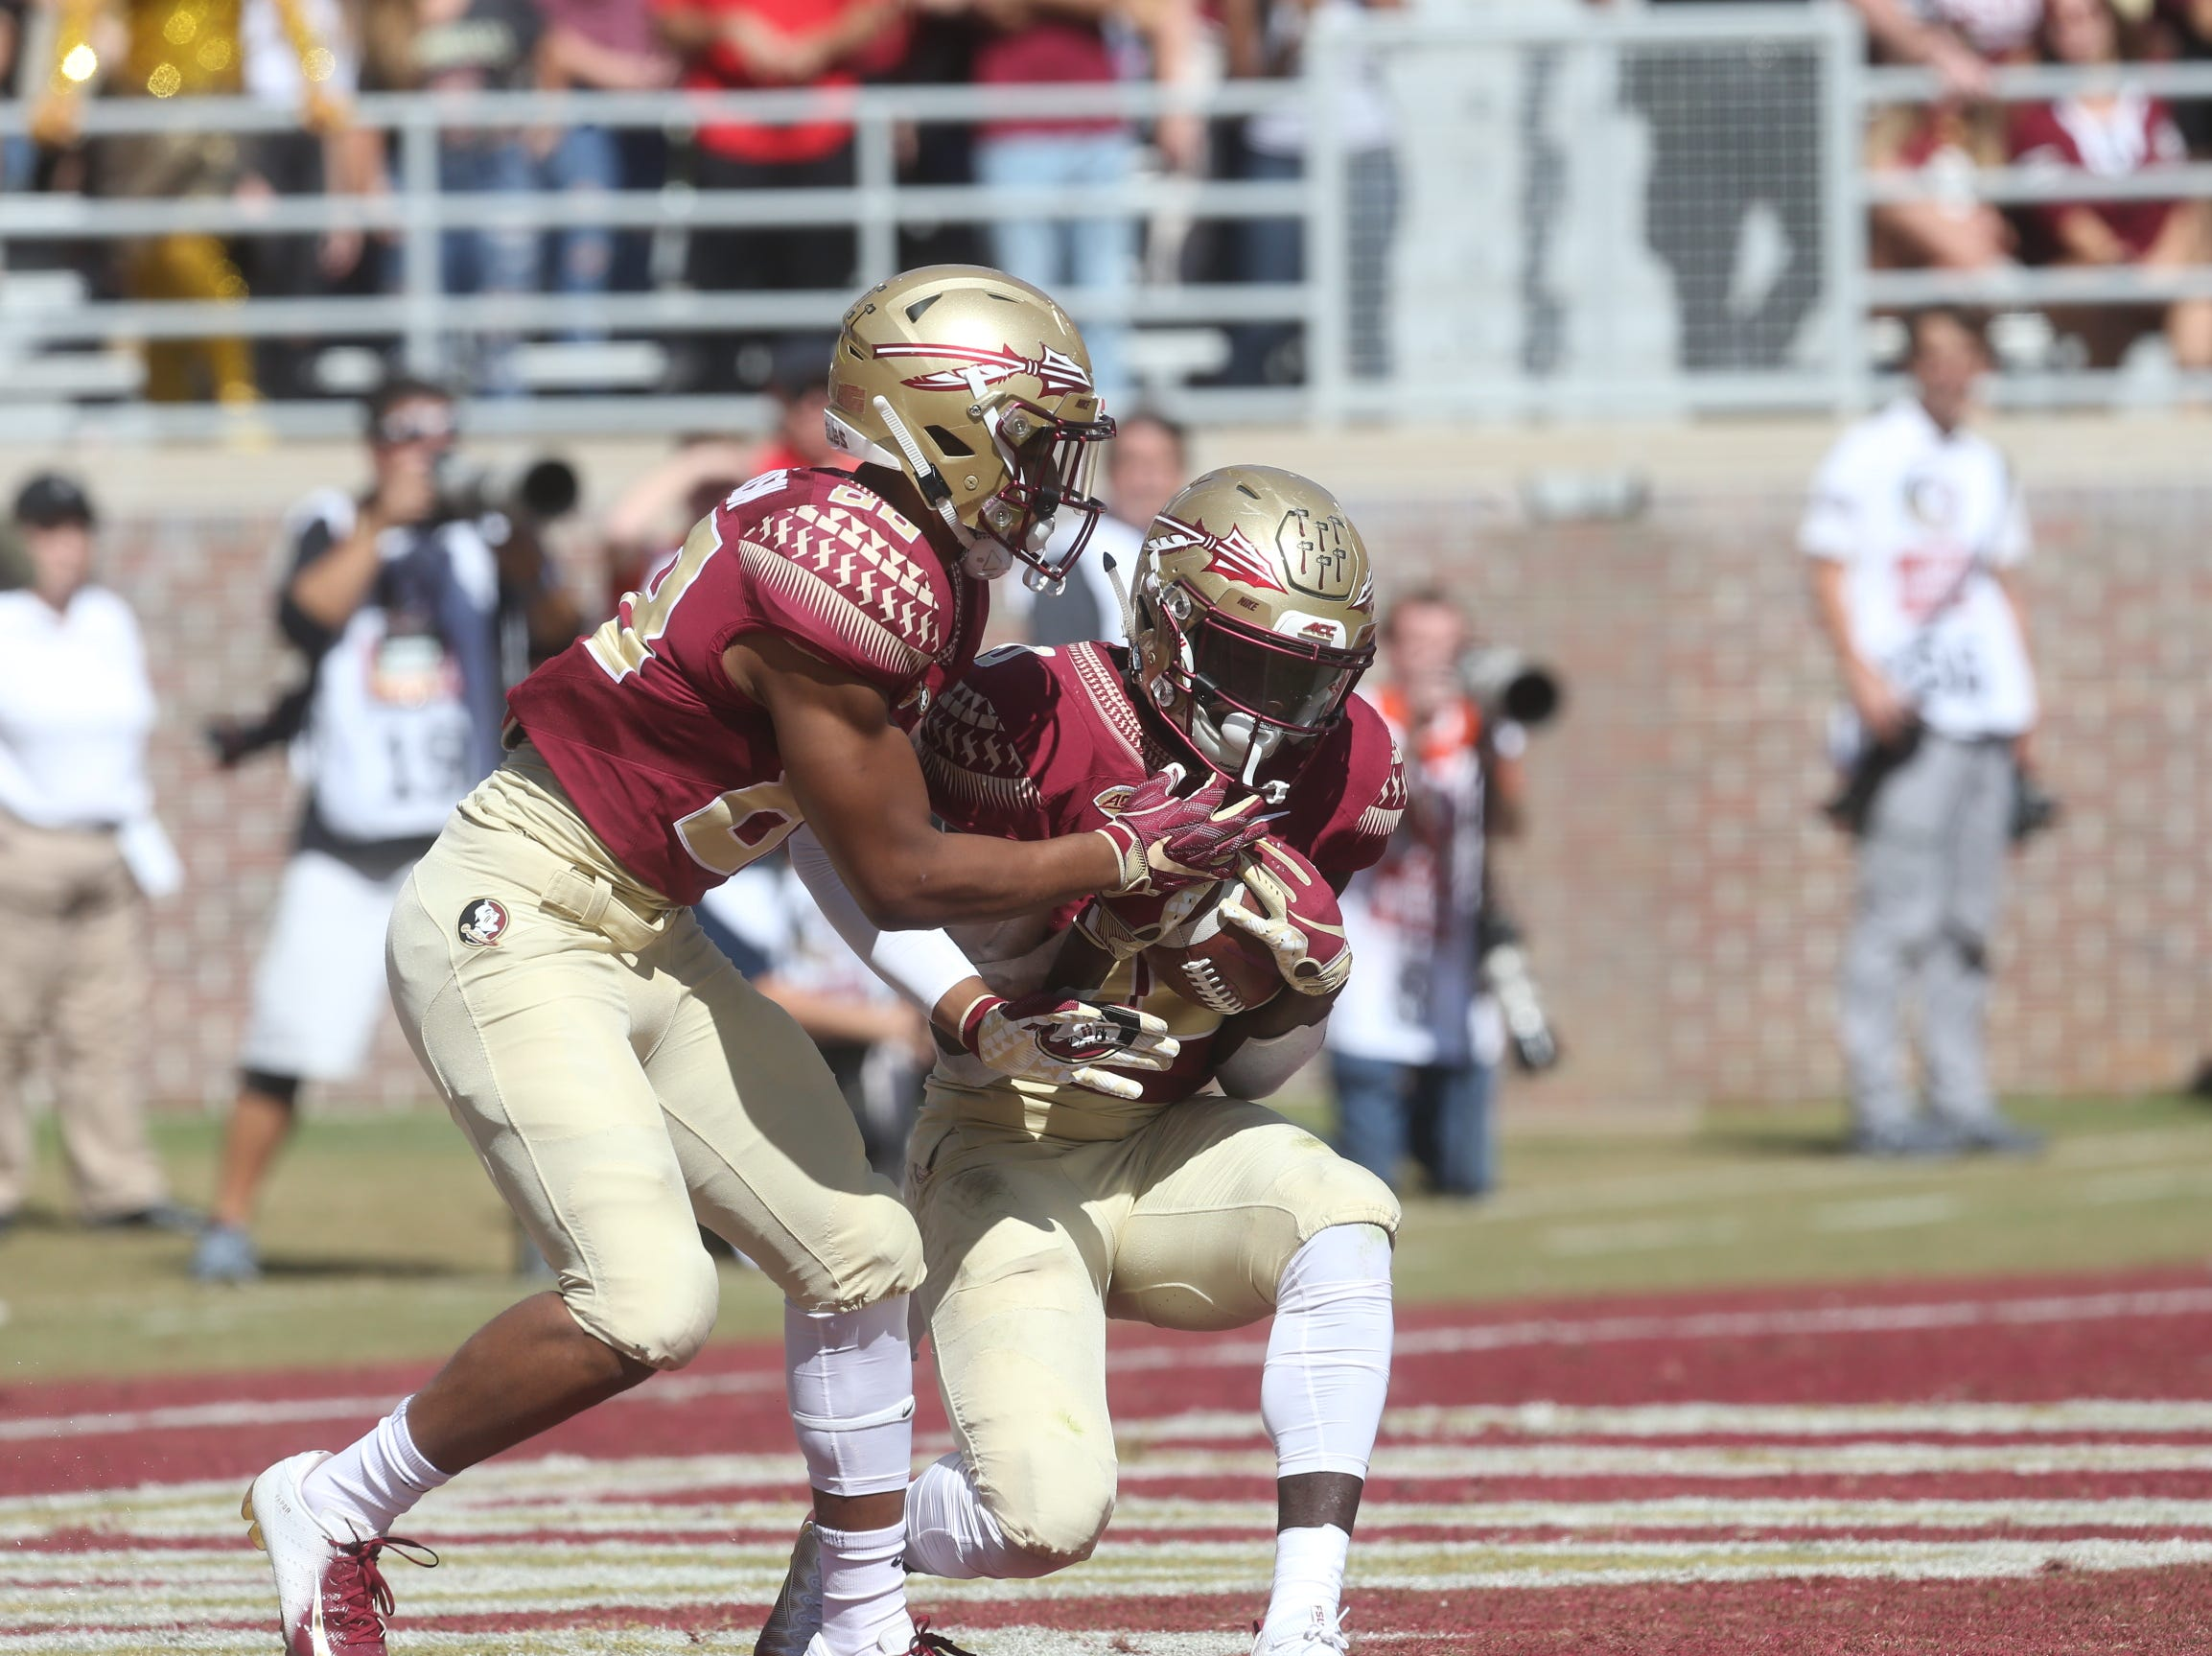 The Florida State Seminoles take on the Clemson Tigers in college football at Doak Stadium on Saturday, Oct. 27, 2018.